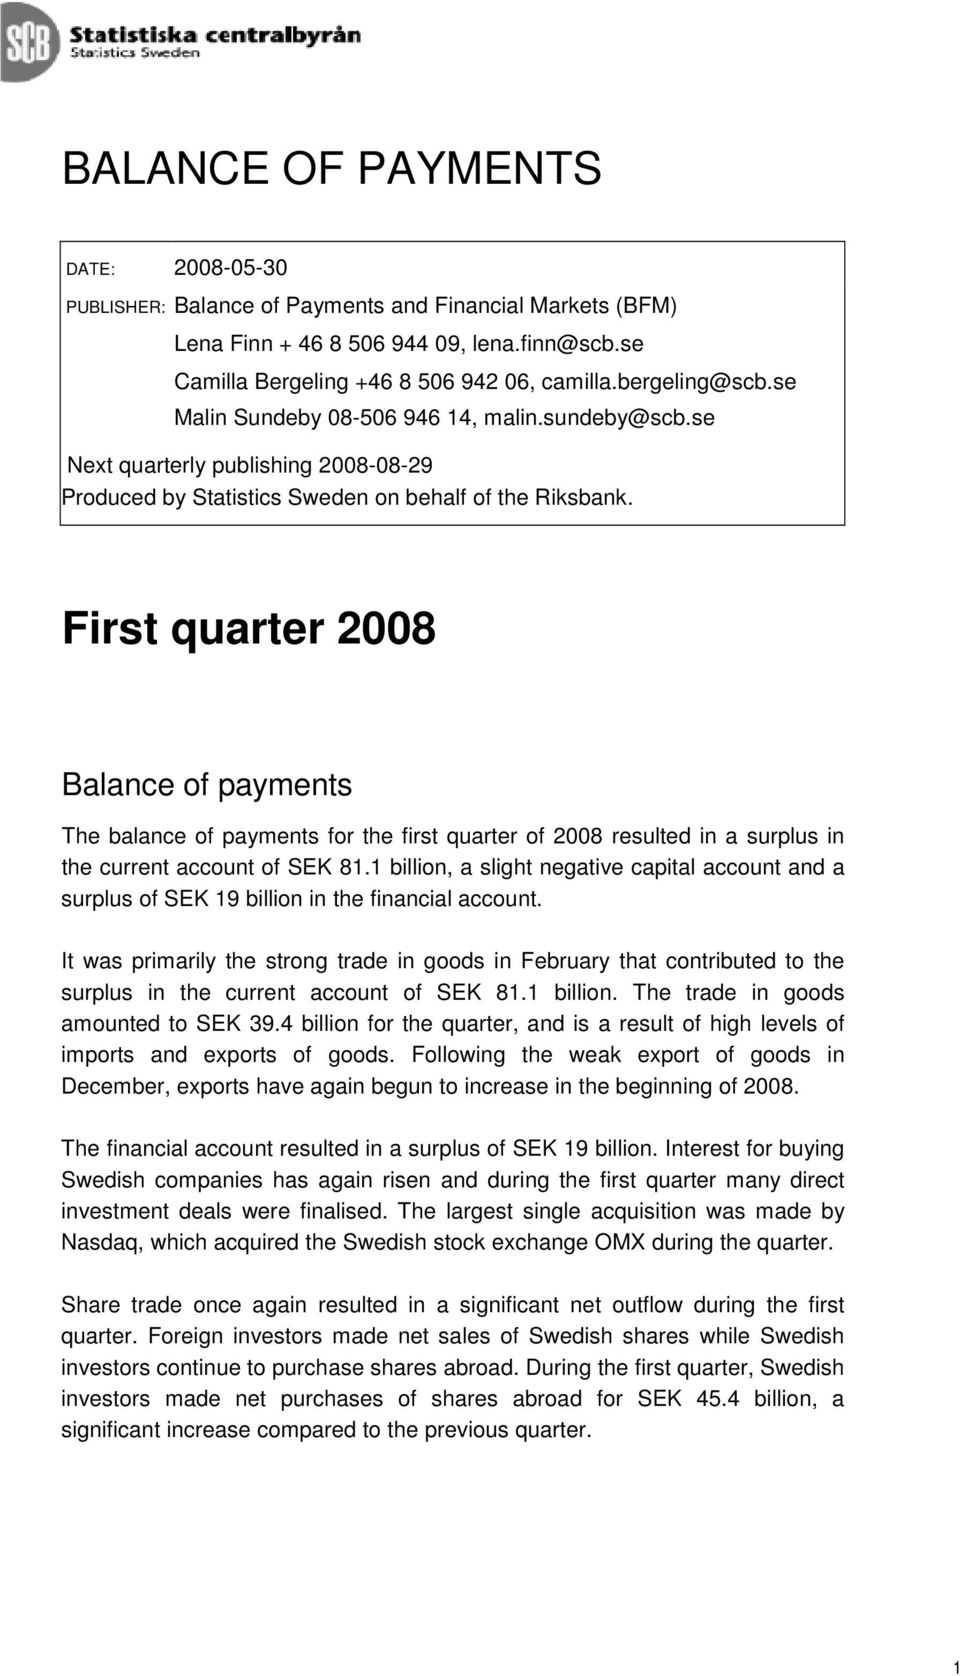 Firs quarer 2008 Balance of paymens The balance of paymens for he firs quarer of 2008 resuled in a surplus in he curren accoun of SEK 81.